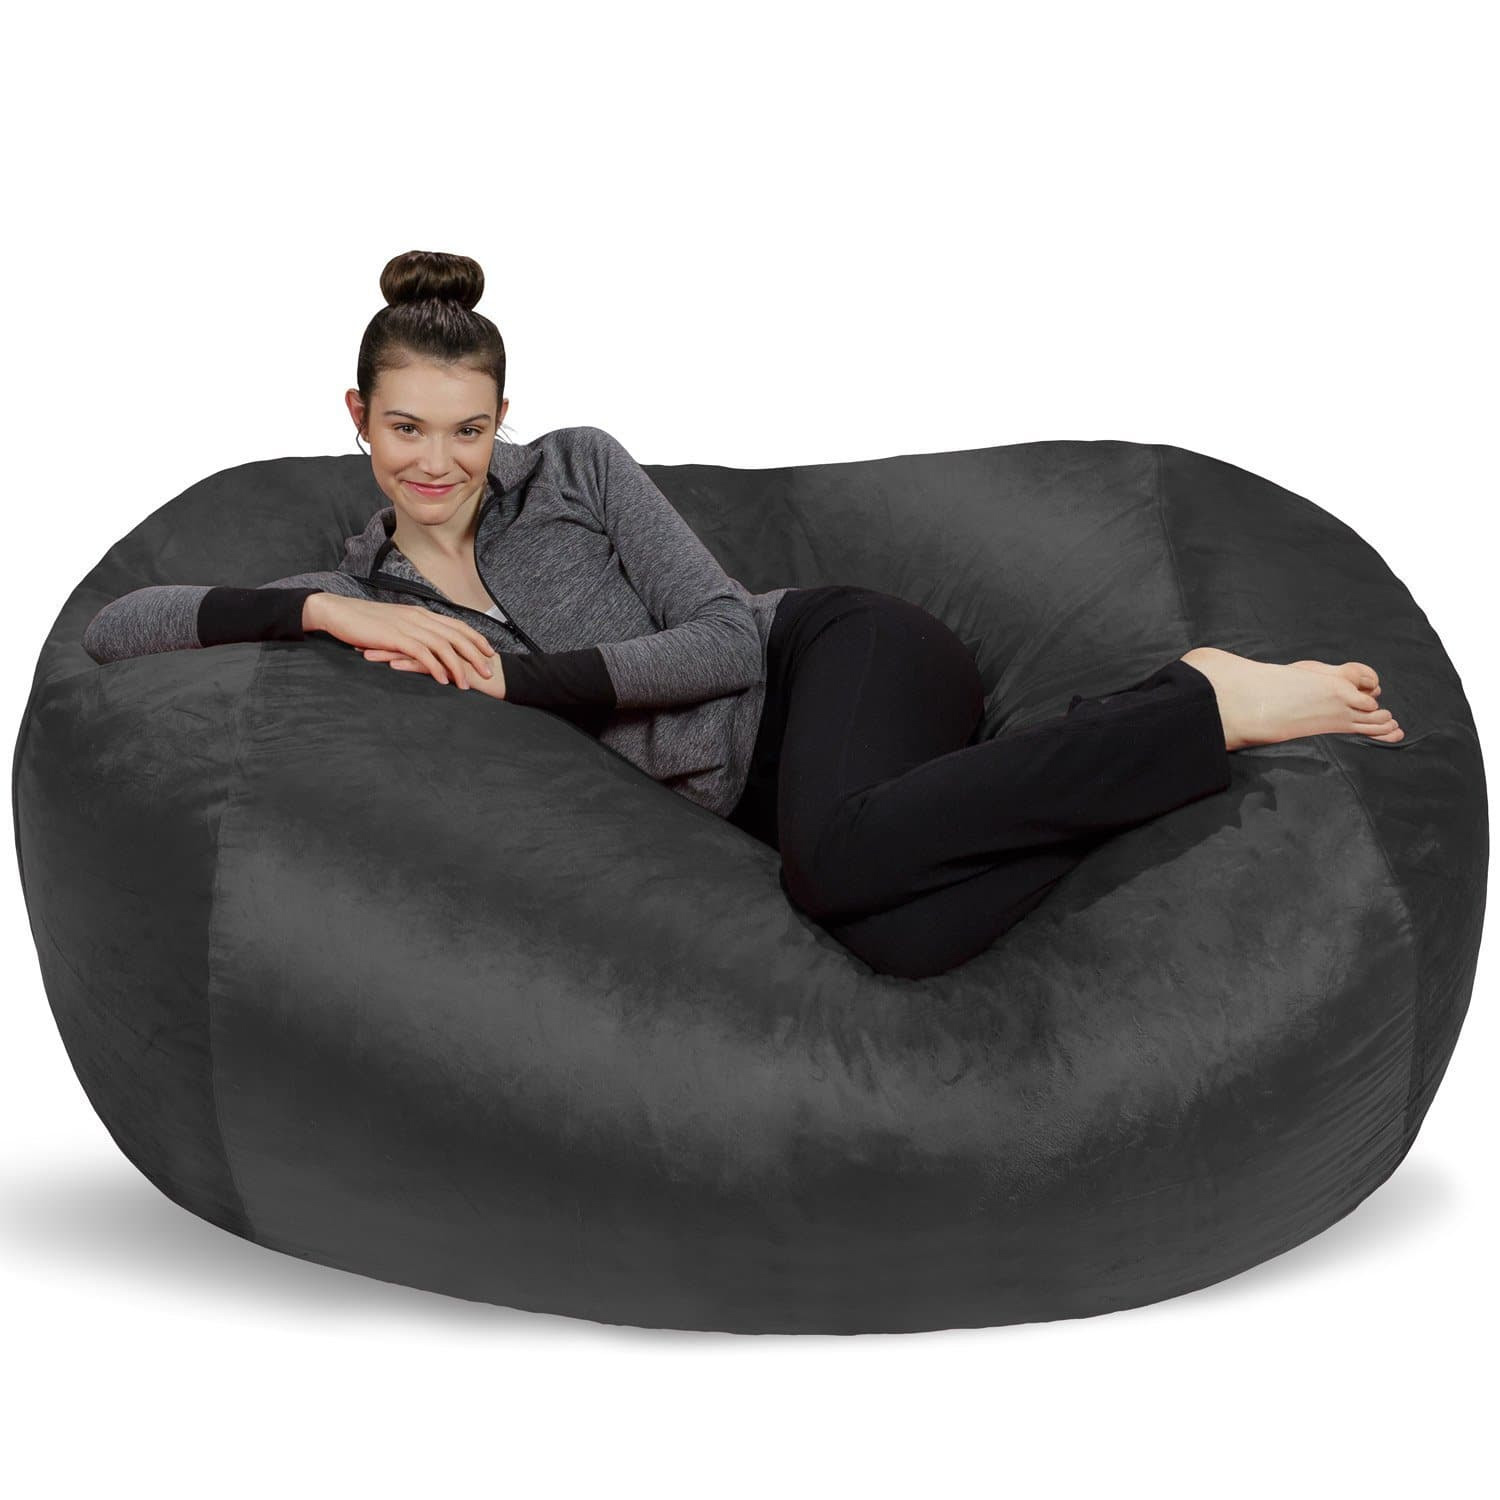 Top 10 Best Bean Bag Chairs in 2017 - TopReviewProducts